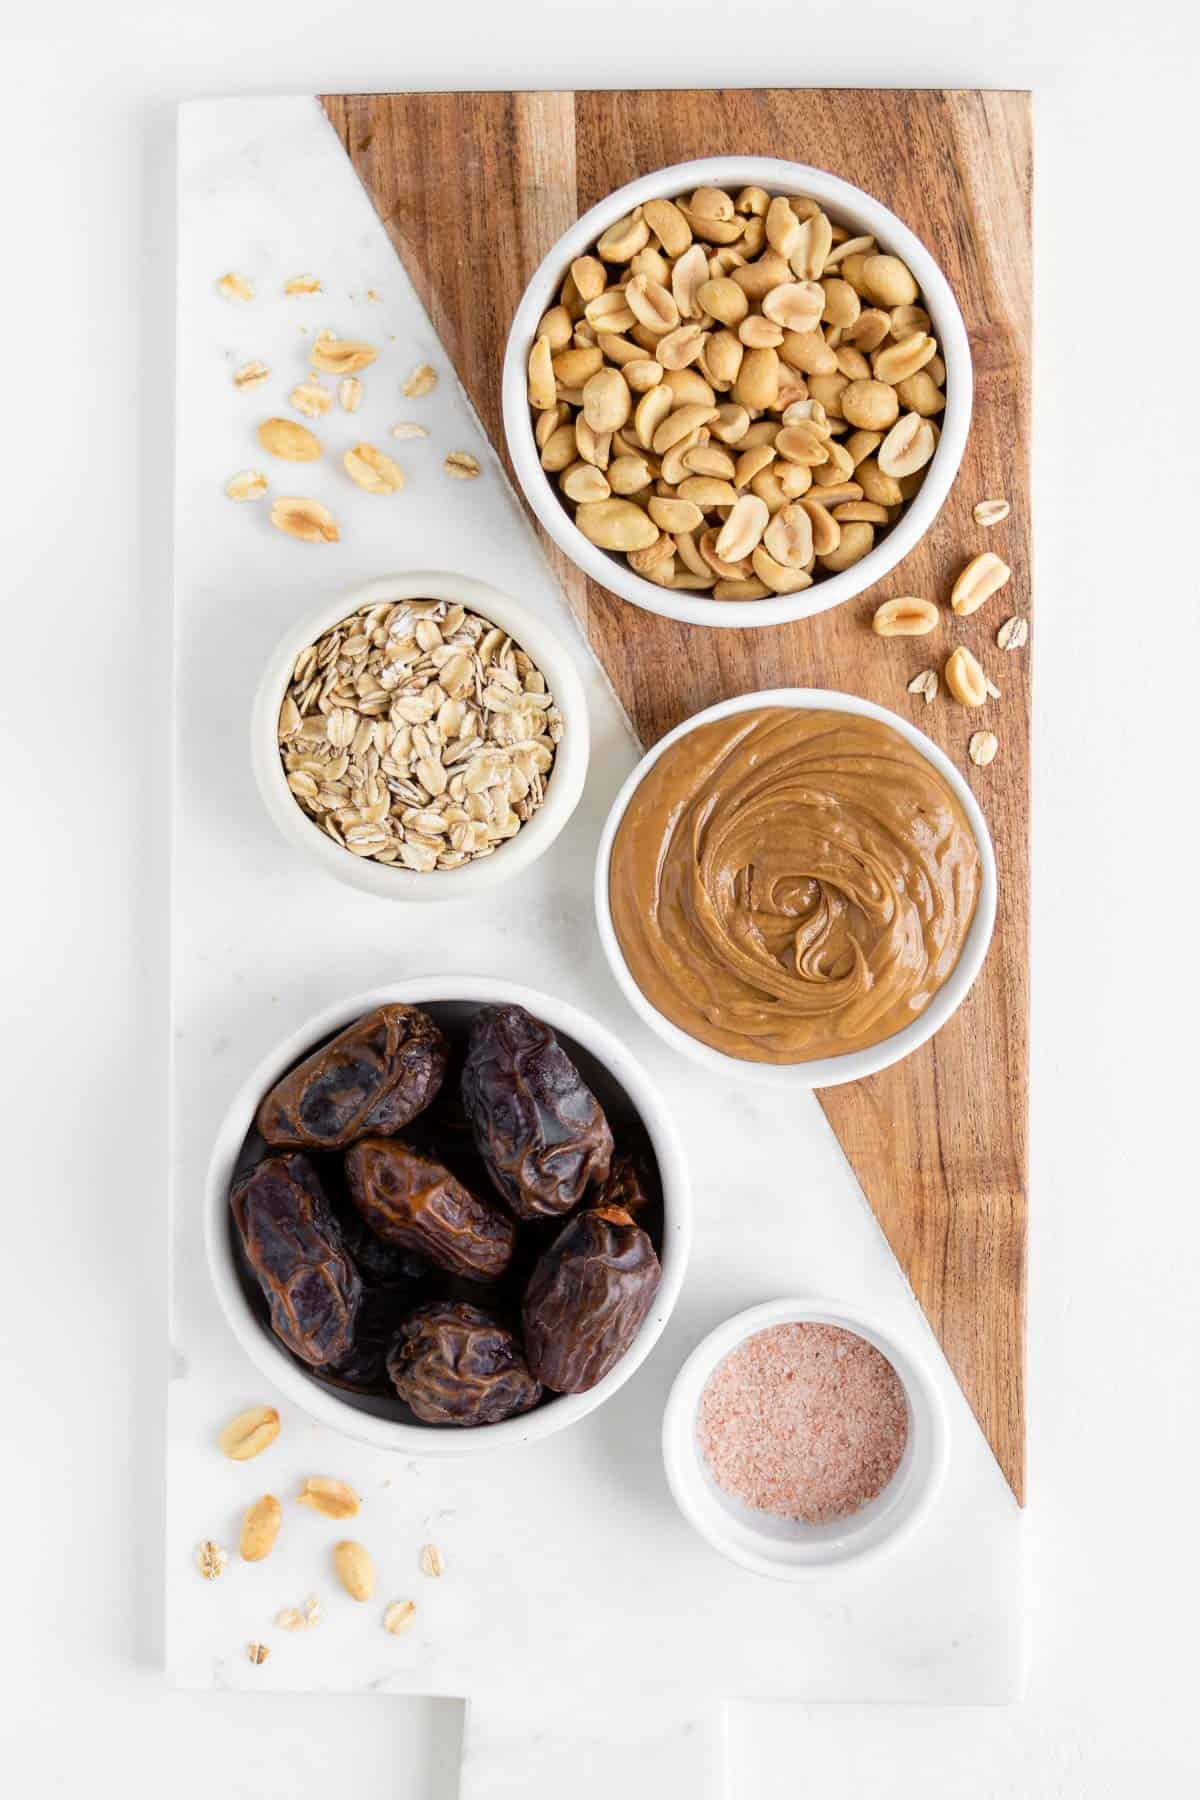 medjool dates, peanuts, oats, salt, and nut butter on a wooden marble cutting board